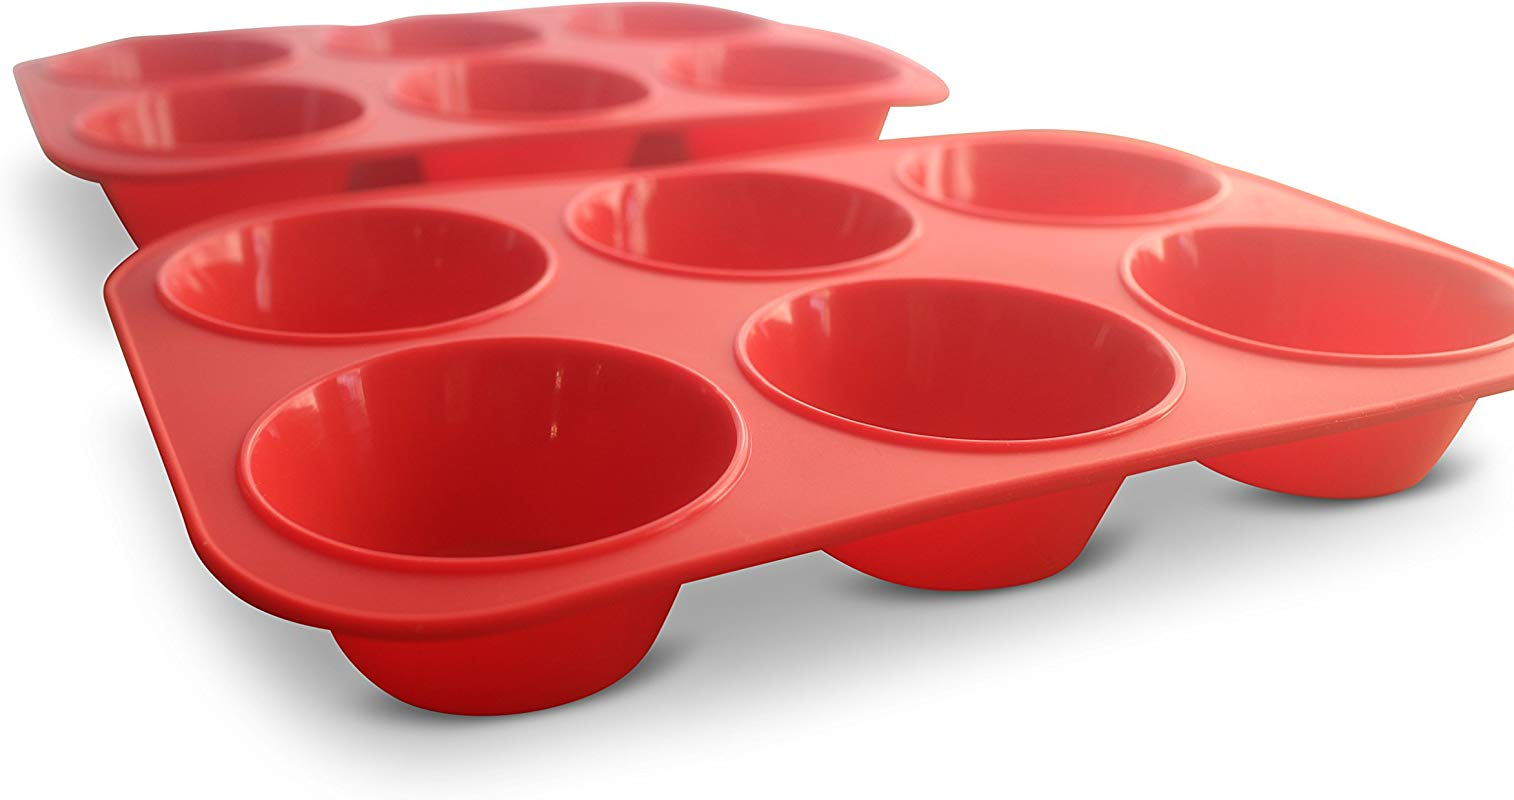 XXL Jumbo Silicone Muffin Pan 3 5 Texas Sized Commercial Muffin Pan Set Of 2 2 Red